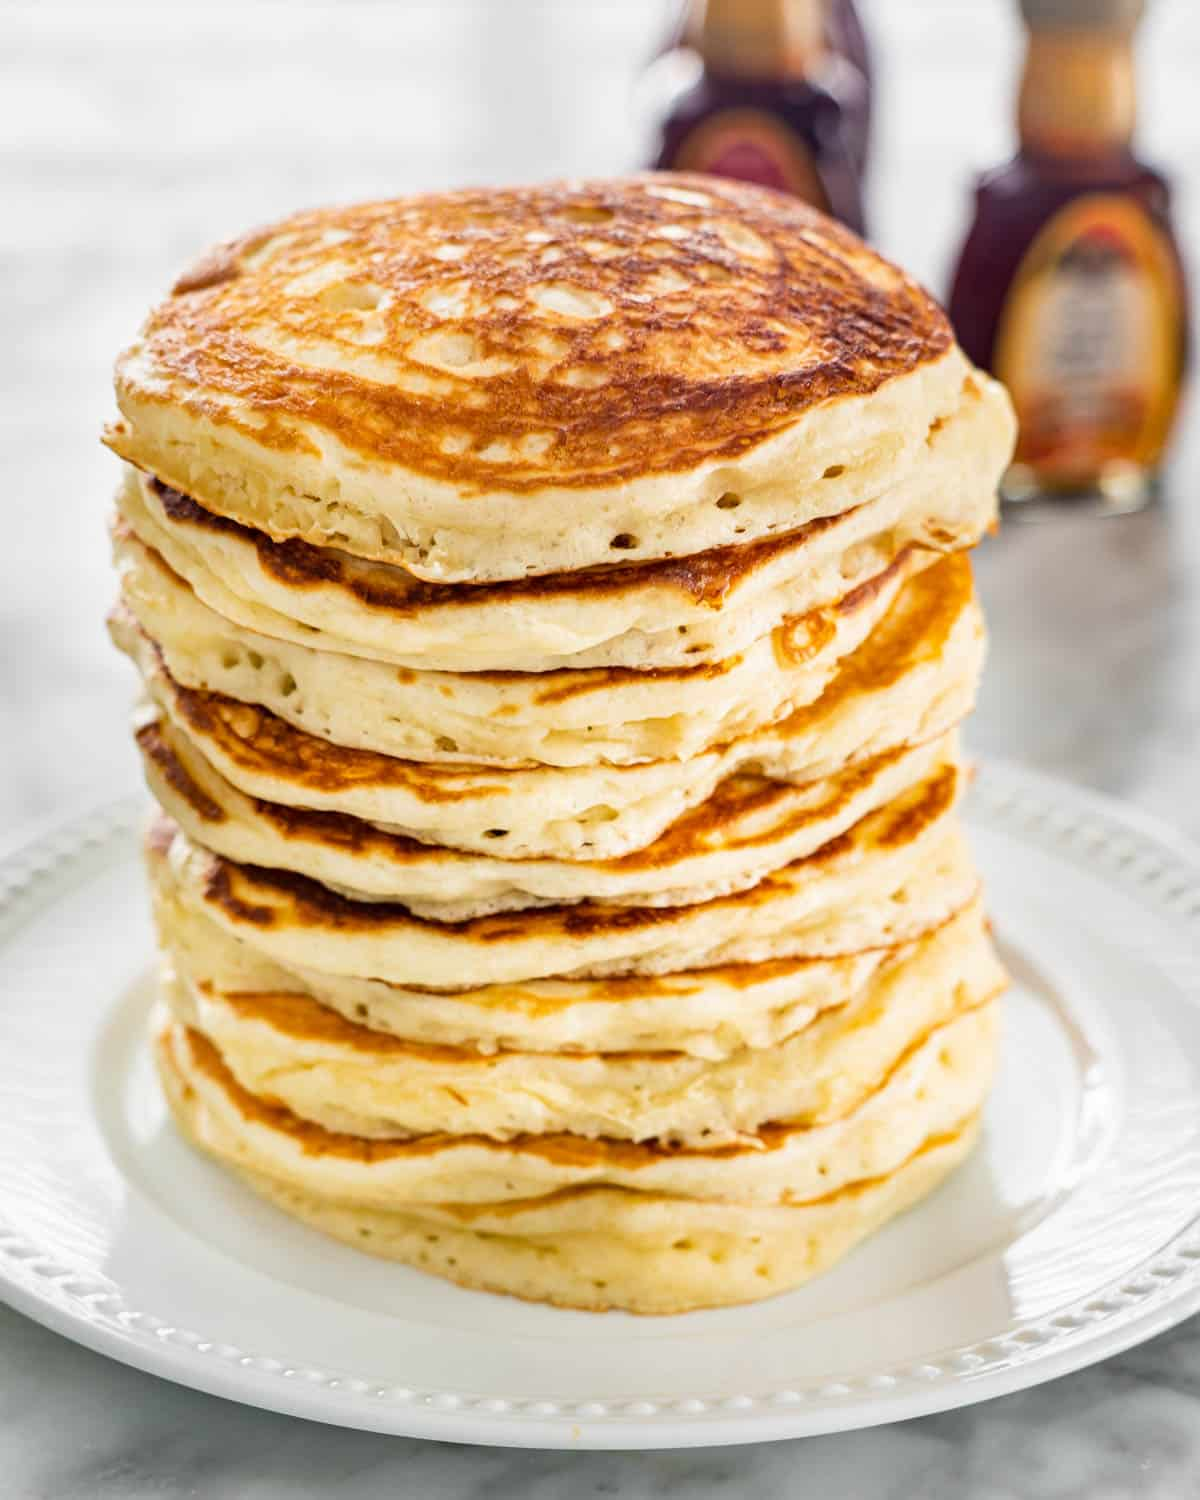 a stack of freshly made pancakes